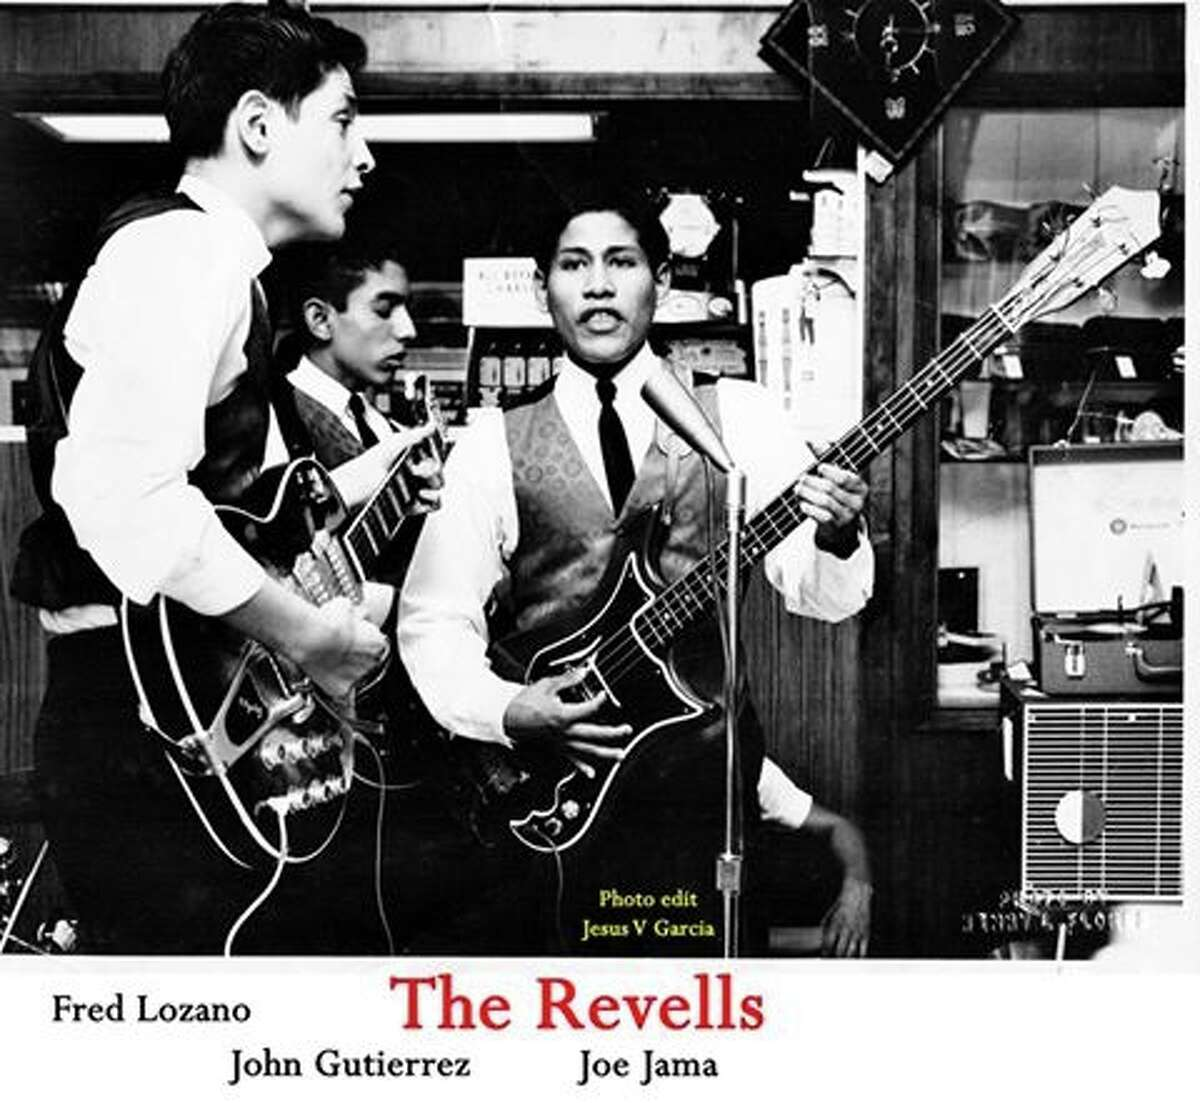 """The Revells featuring Fred Lozano (left) on lead vocals and guitar and Joe Jama (center) on bass specialized in rocked-up versions of songs by the Beatles, including """"She Loves You"""" in Spanish. The band had a local radio hit on KONO with """"I Want You to Know""""/ """"You Turn Your Back on Me."""" Lozano sang lead on the latter. It was on the Prism Records label."""